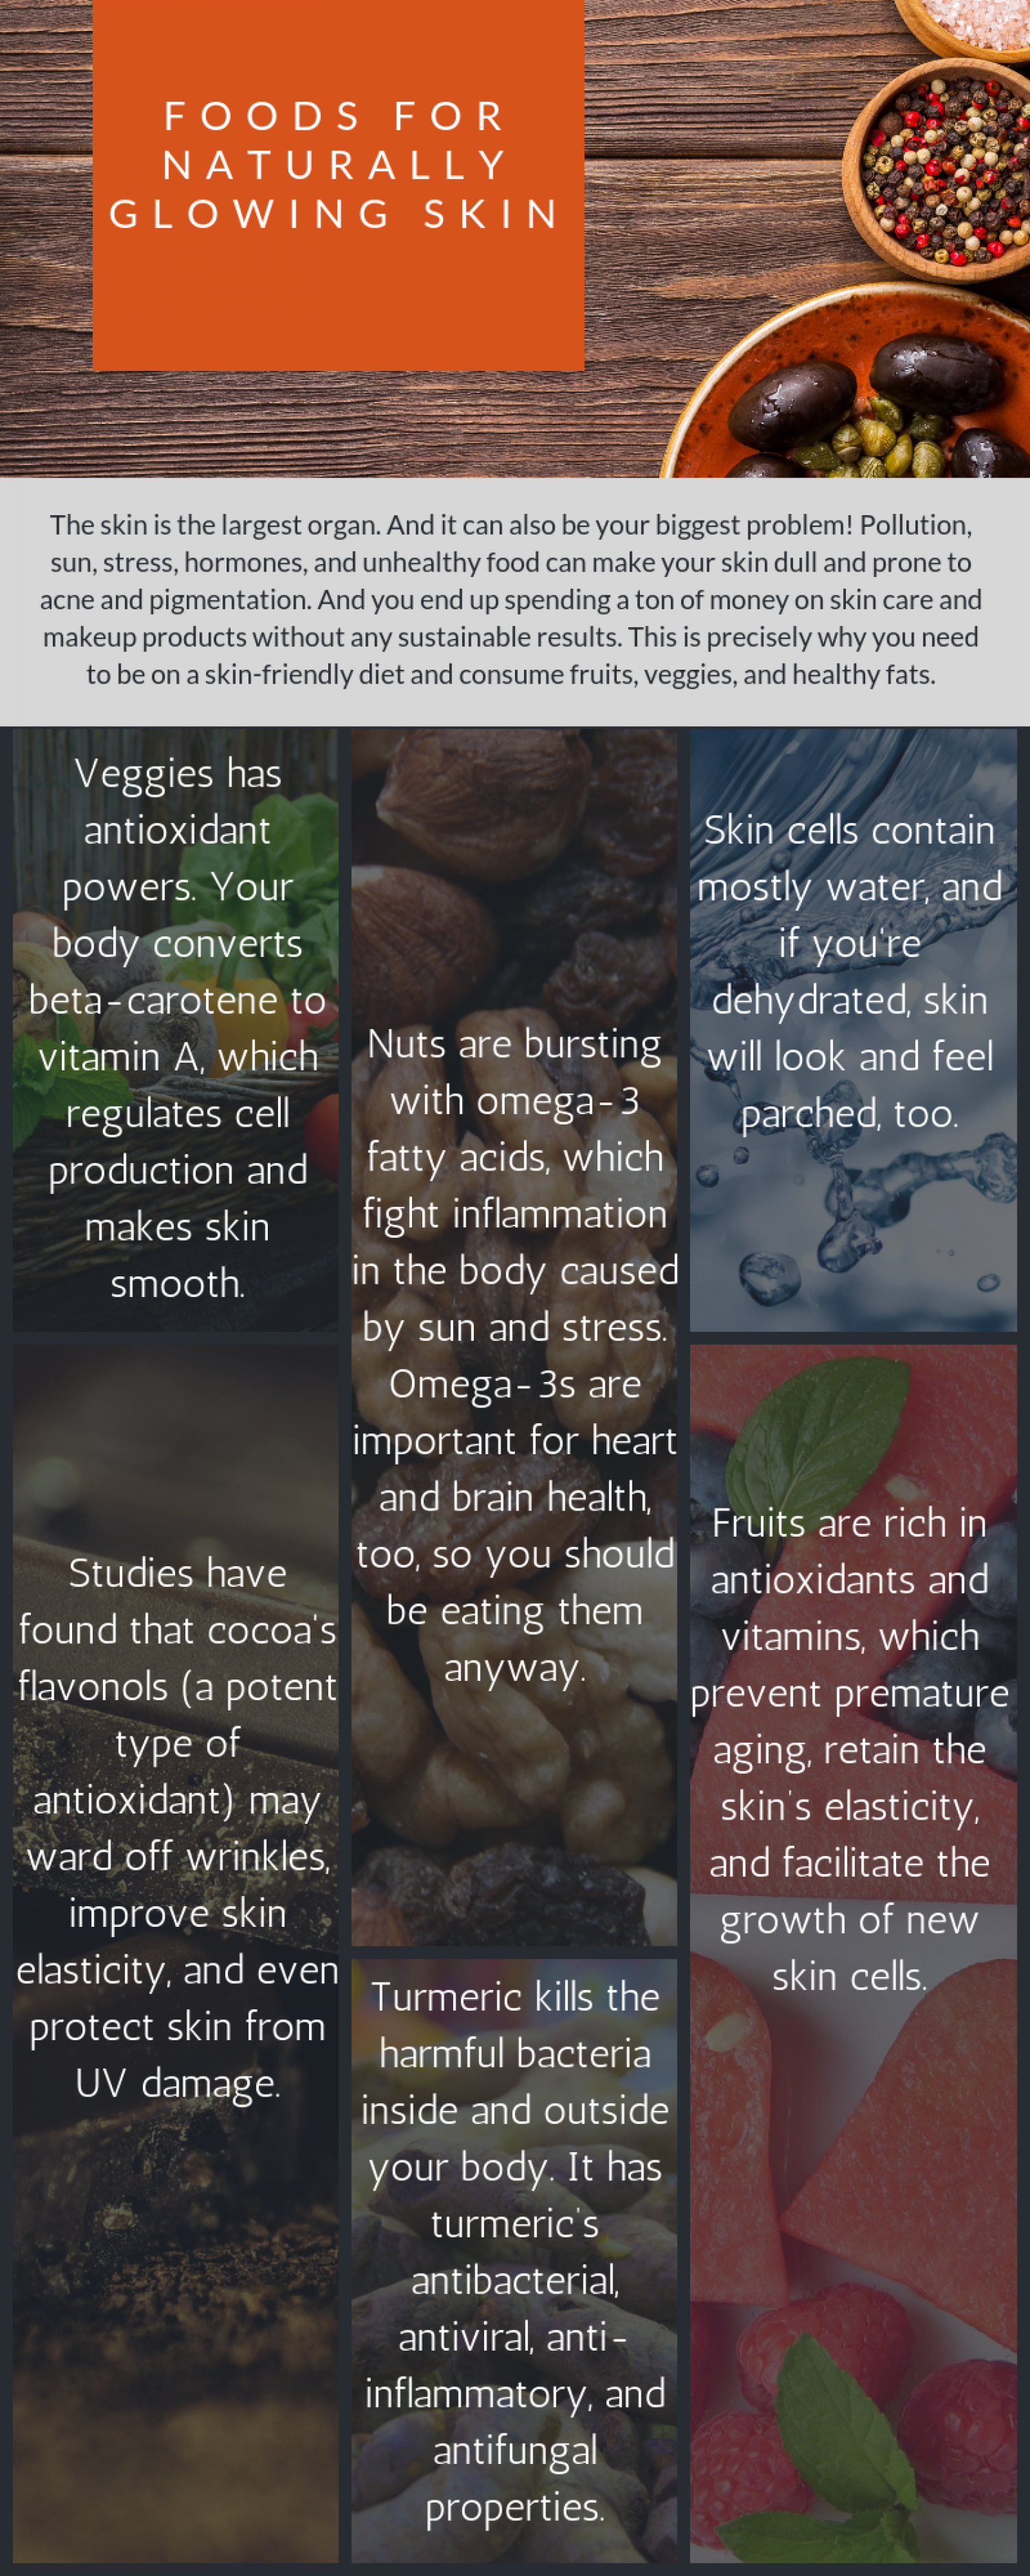 Foods for Glowing Skin Infographic